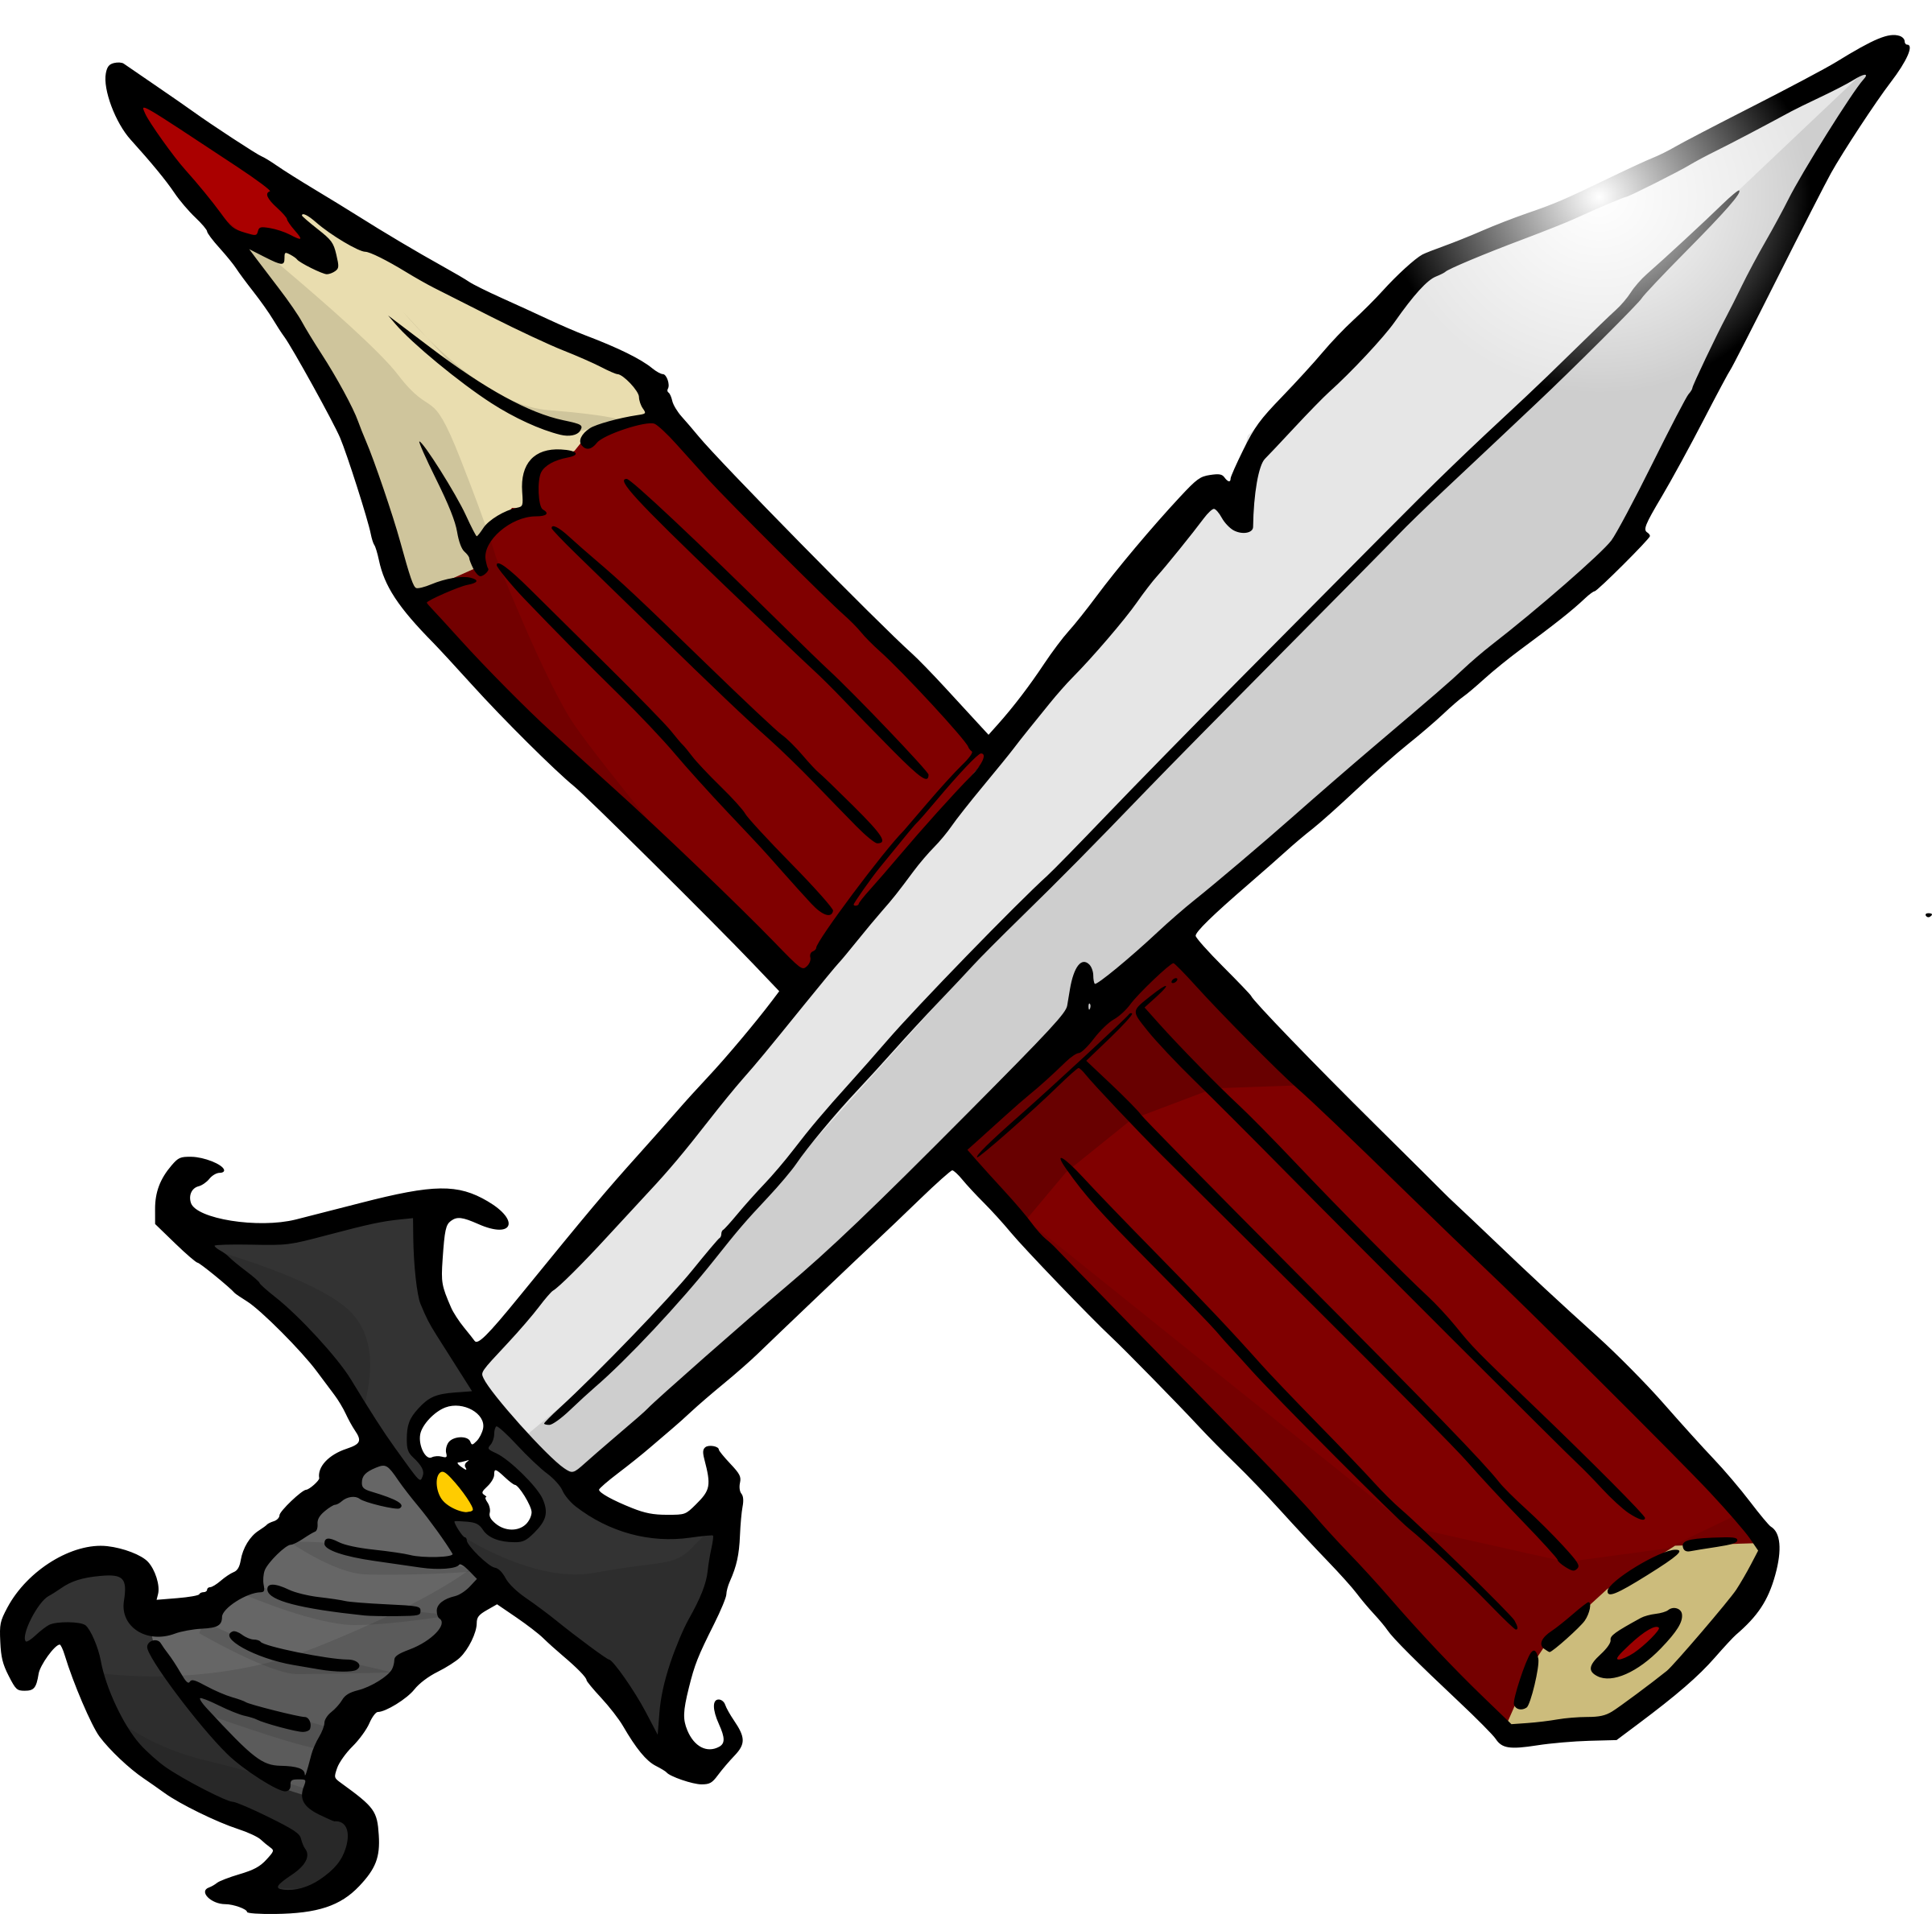 Sword and pencil by Odysseus